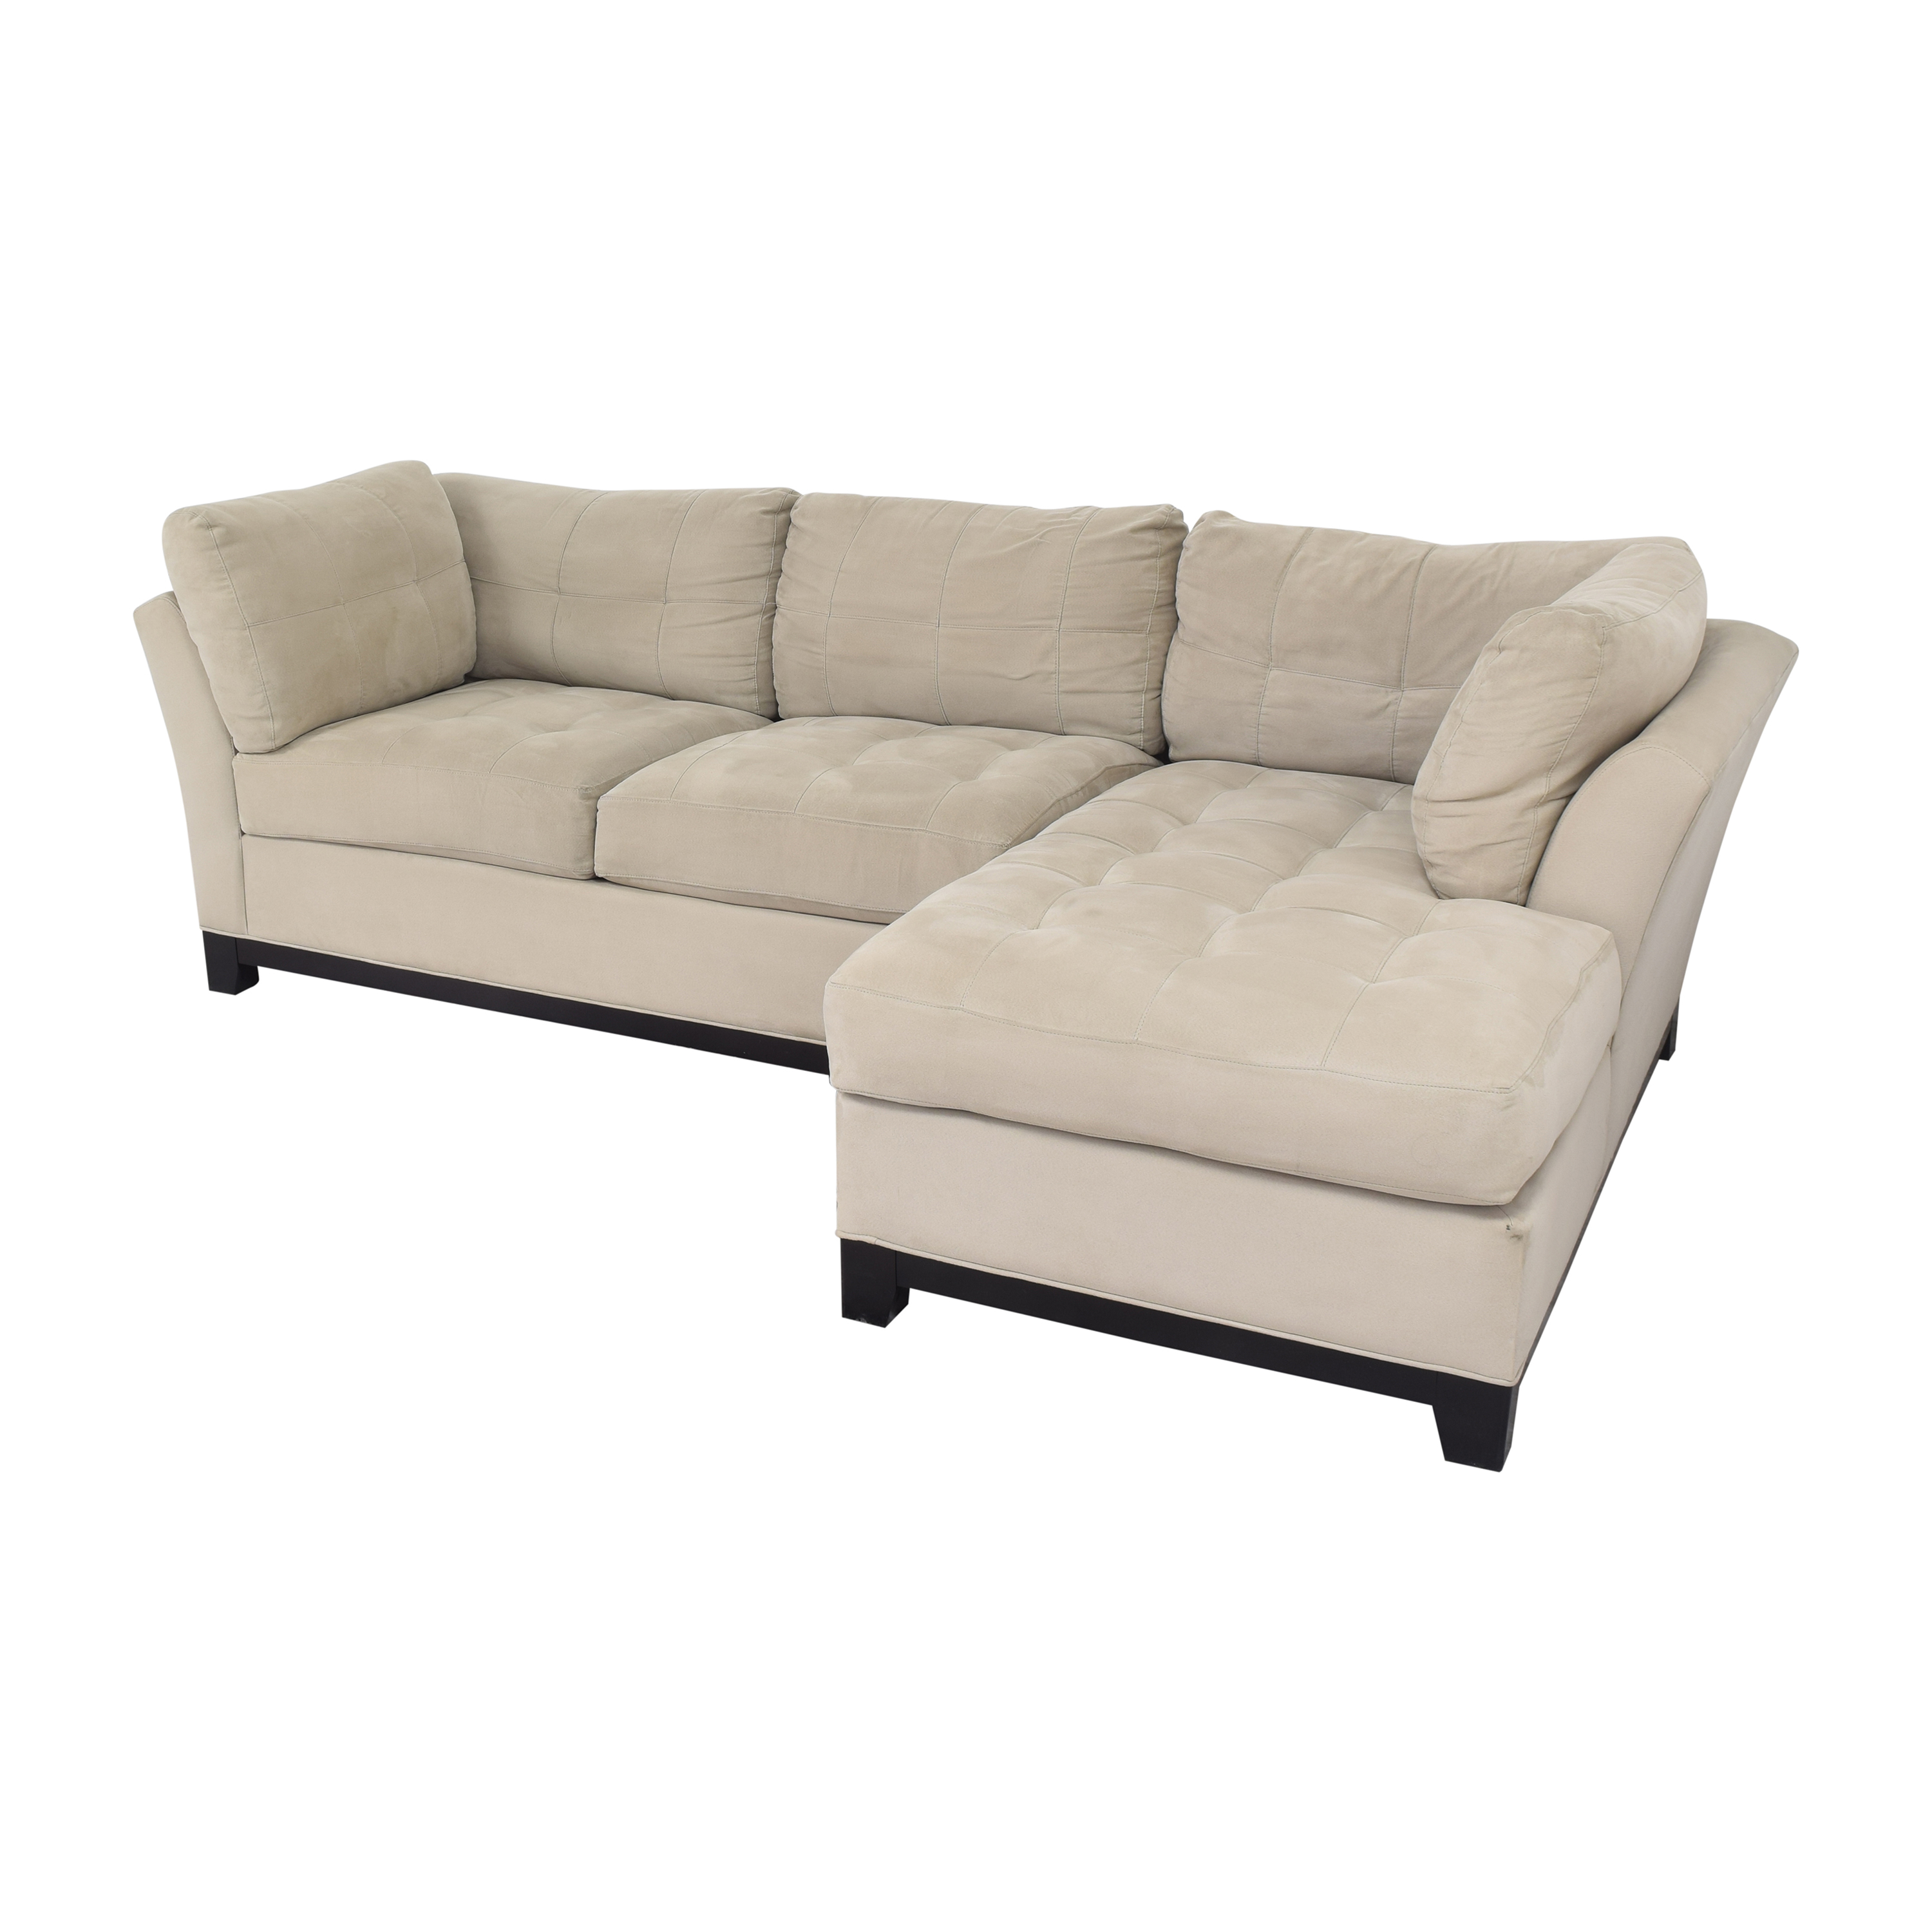 Cindy Crawford Home Cindy Crawford Home Metropolis Sectional Sofa second hand